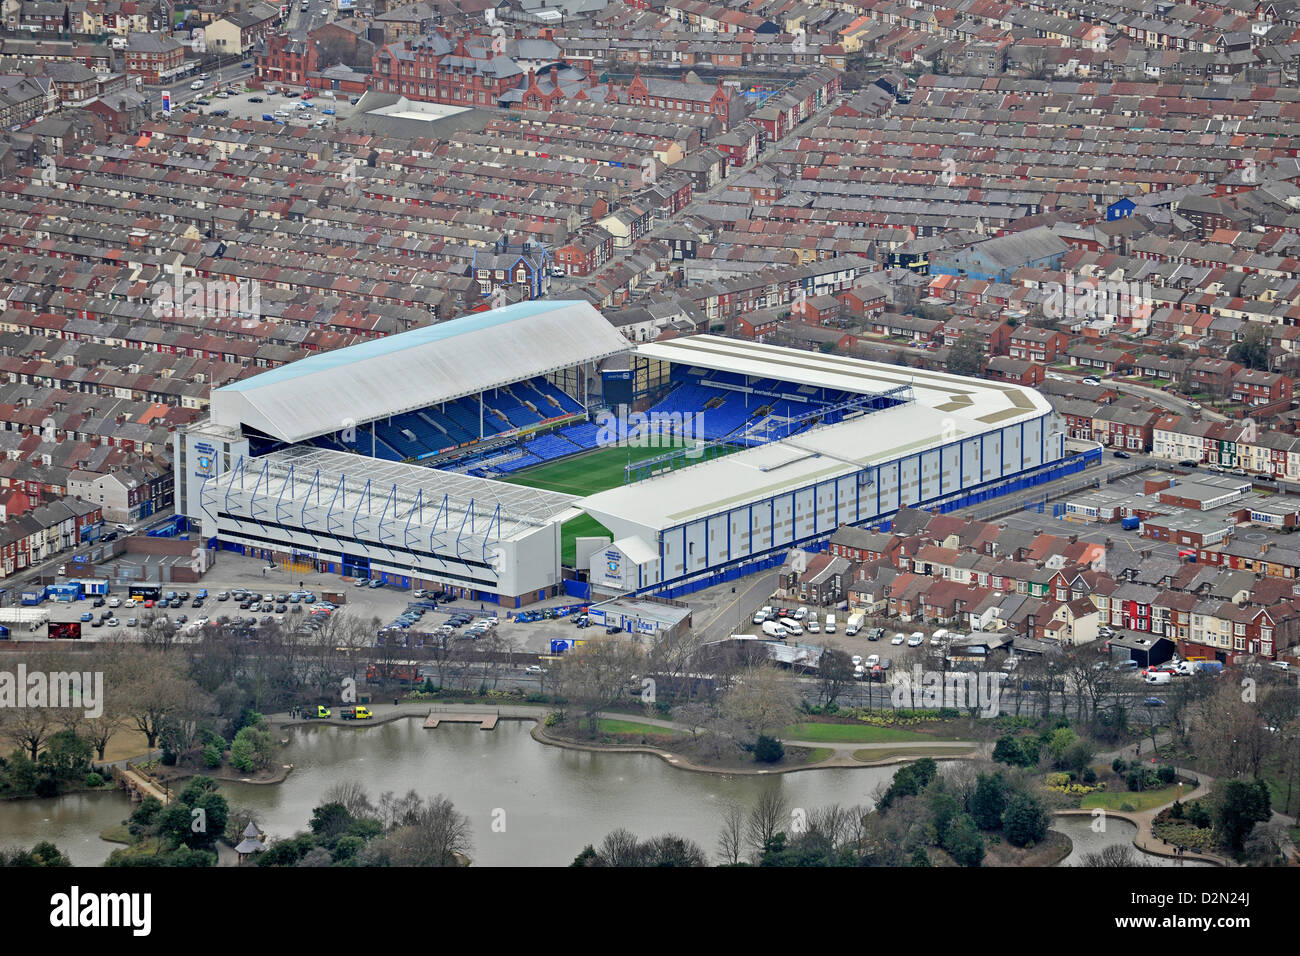 Aerial photograph of Goodison Park and surroundings Stock Photo